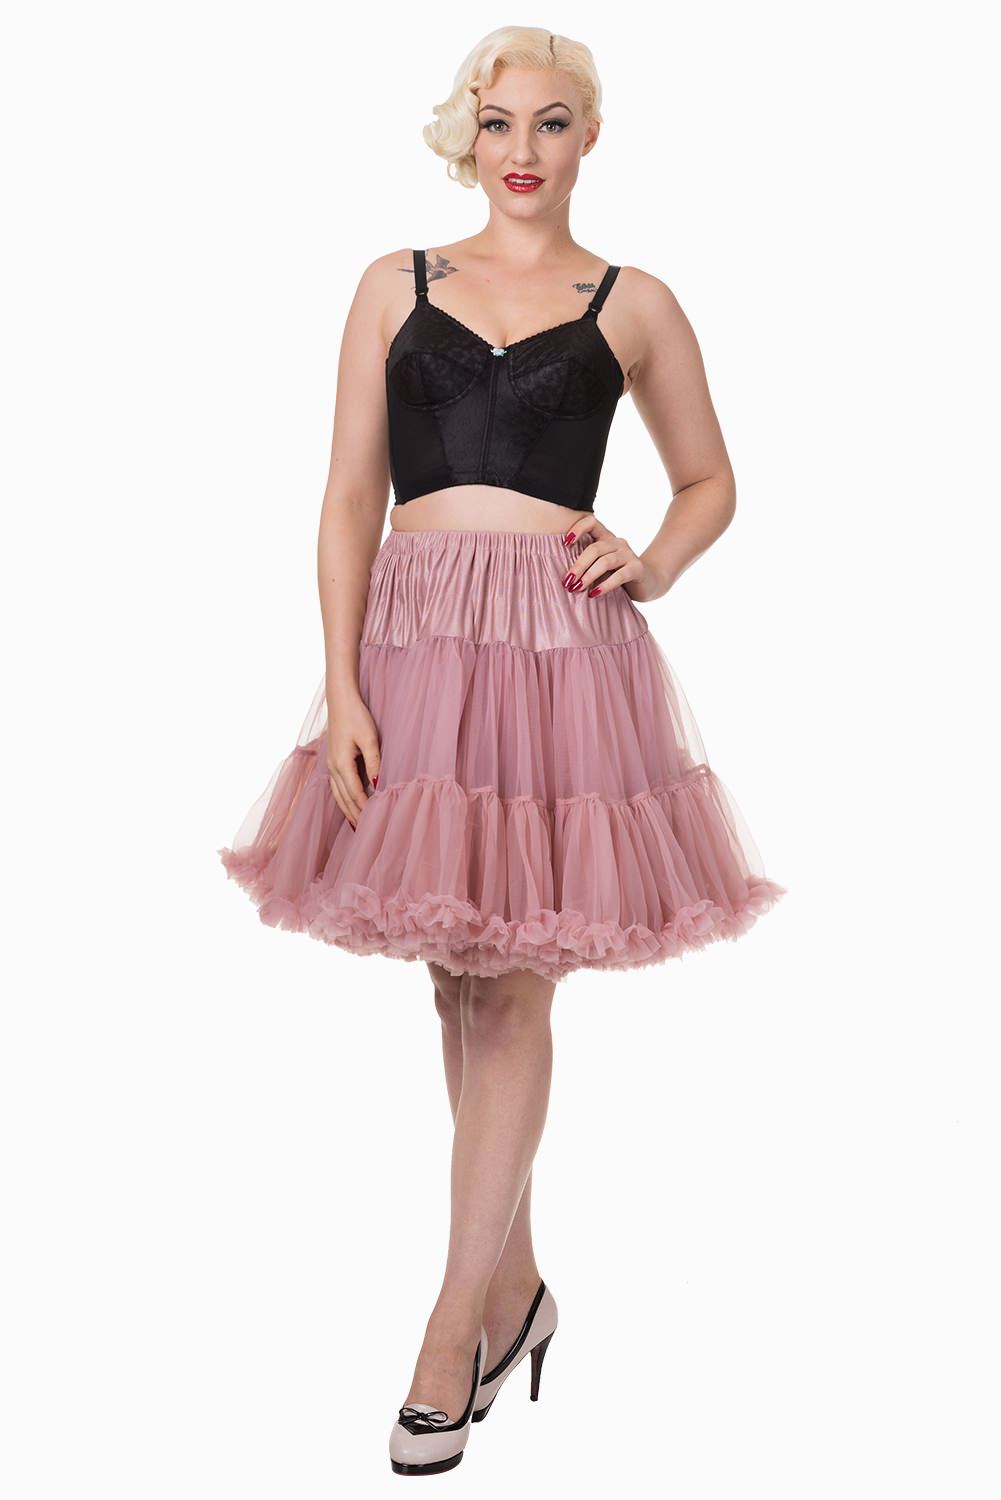 Banned Retro 50s Walkabout Dusty Pink Petticoat